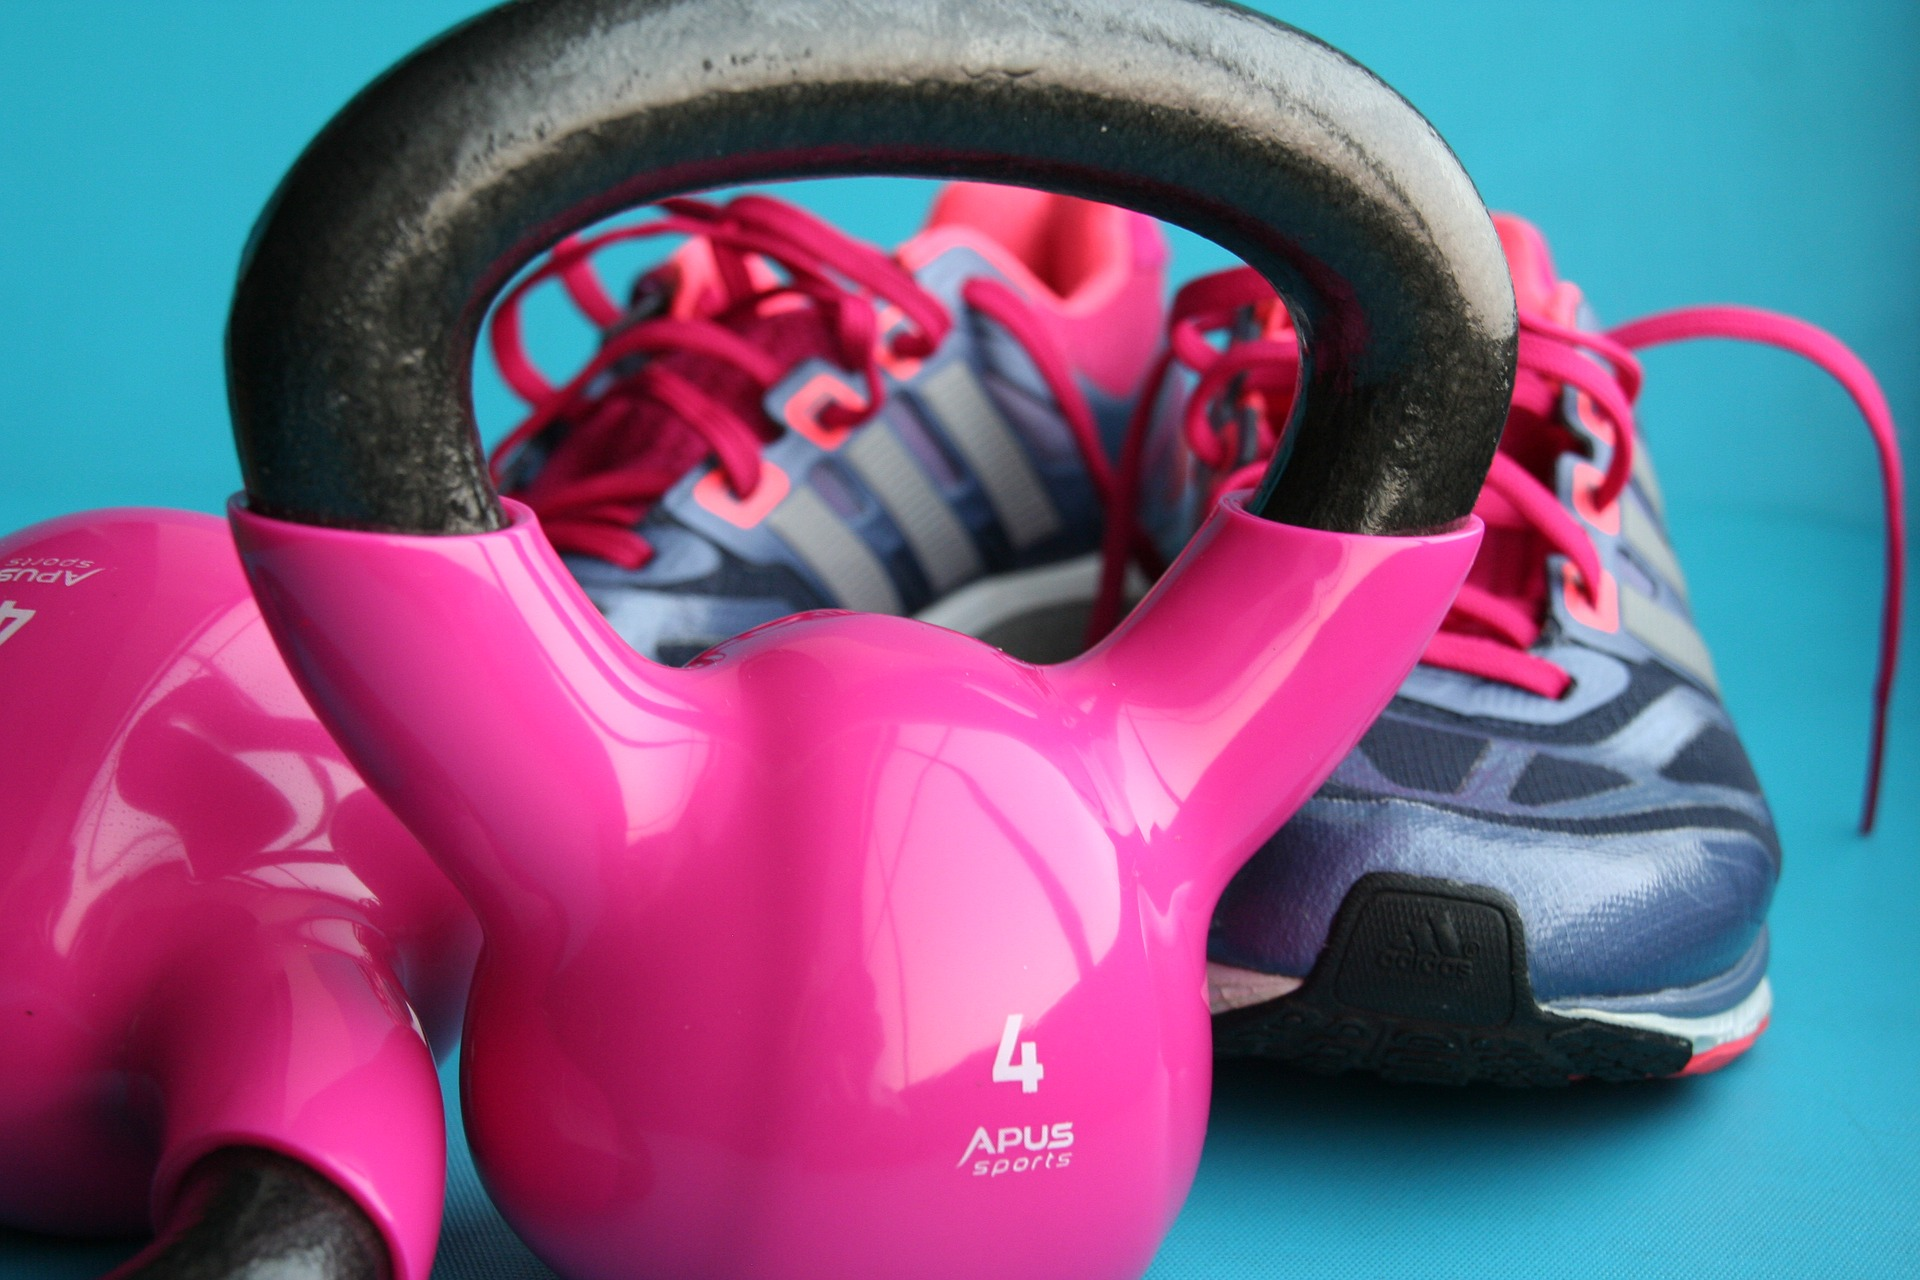 The Best KettleBell Set of 2019